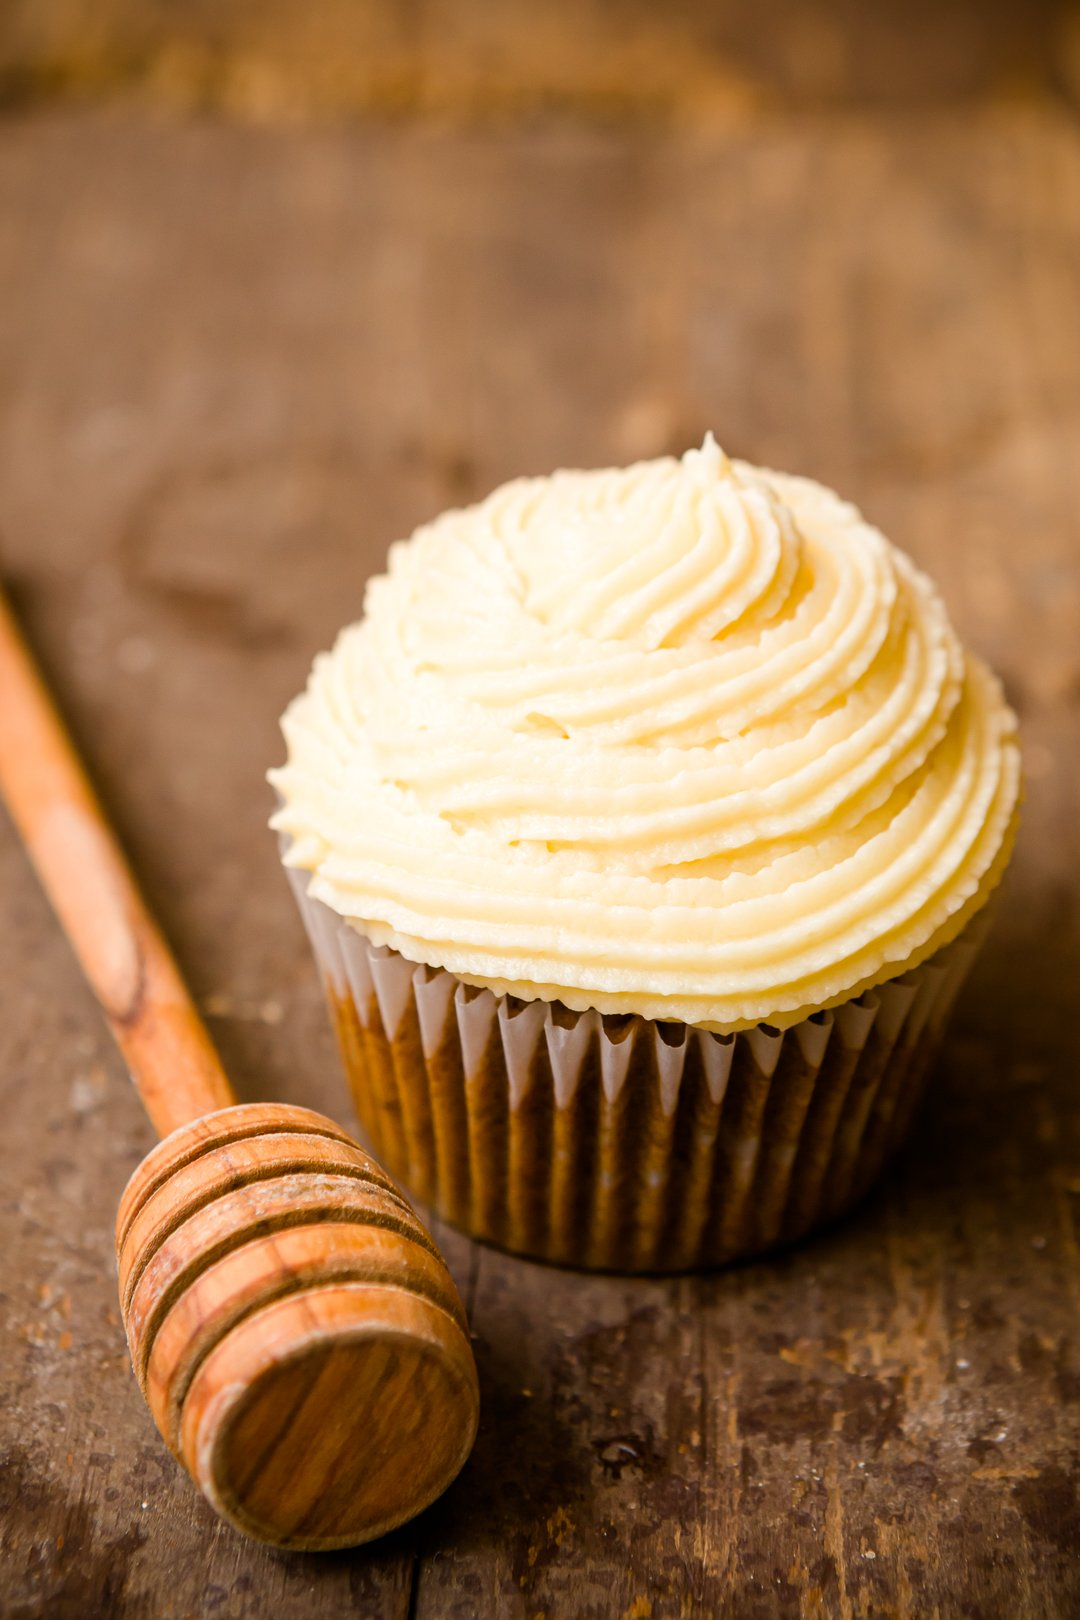 Honey cupcake with a honey dipper next to it